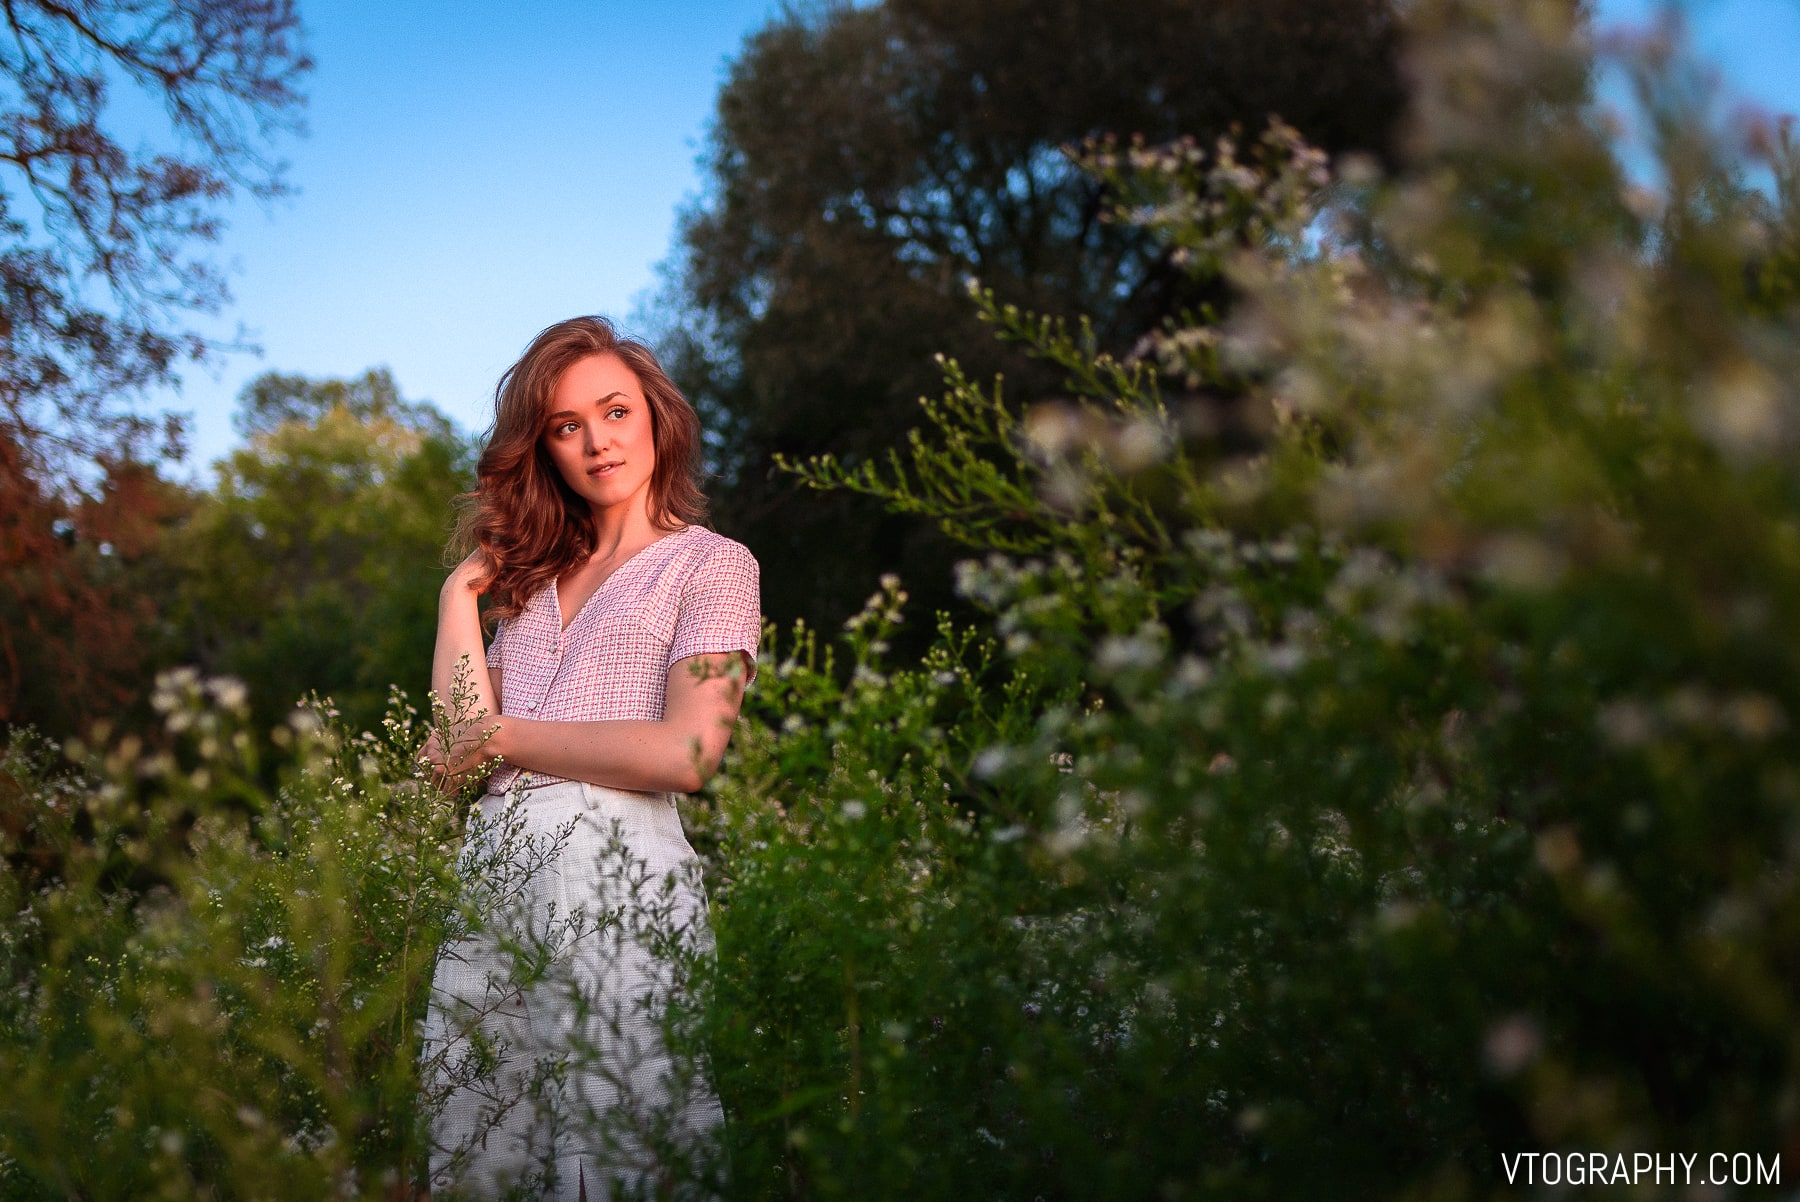 Tamron 35mm golden hour portraits with Kathryn